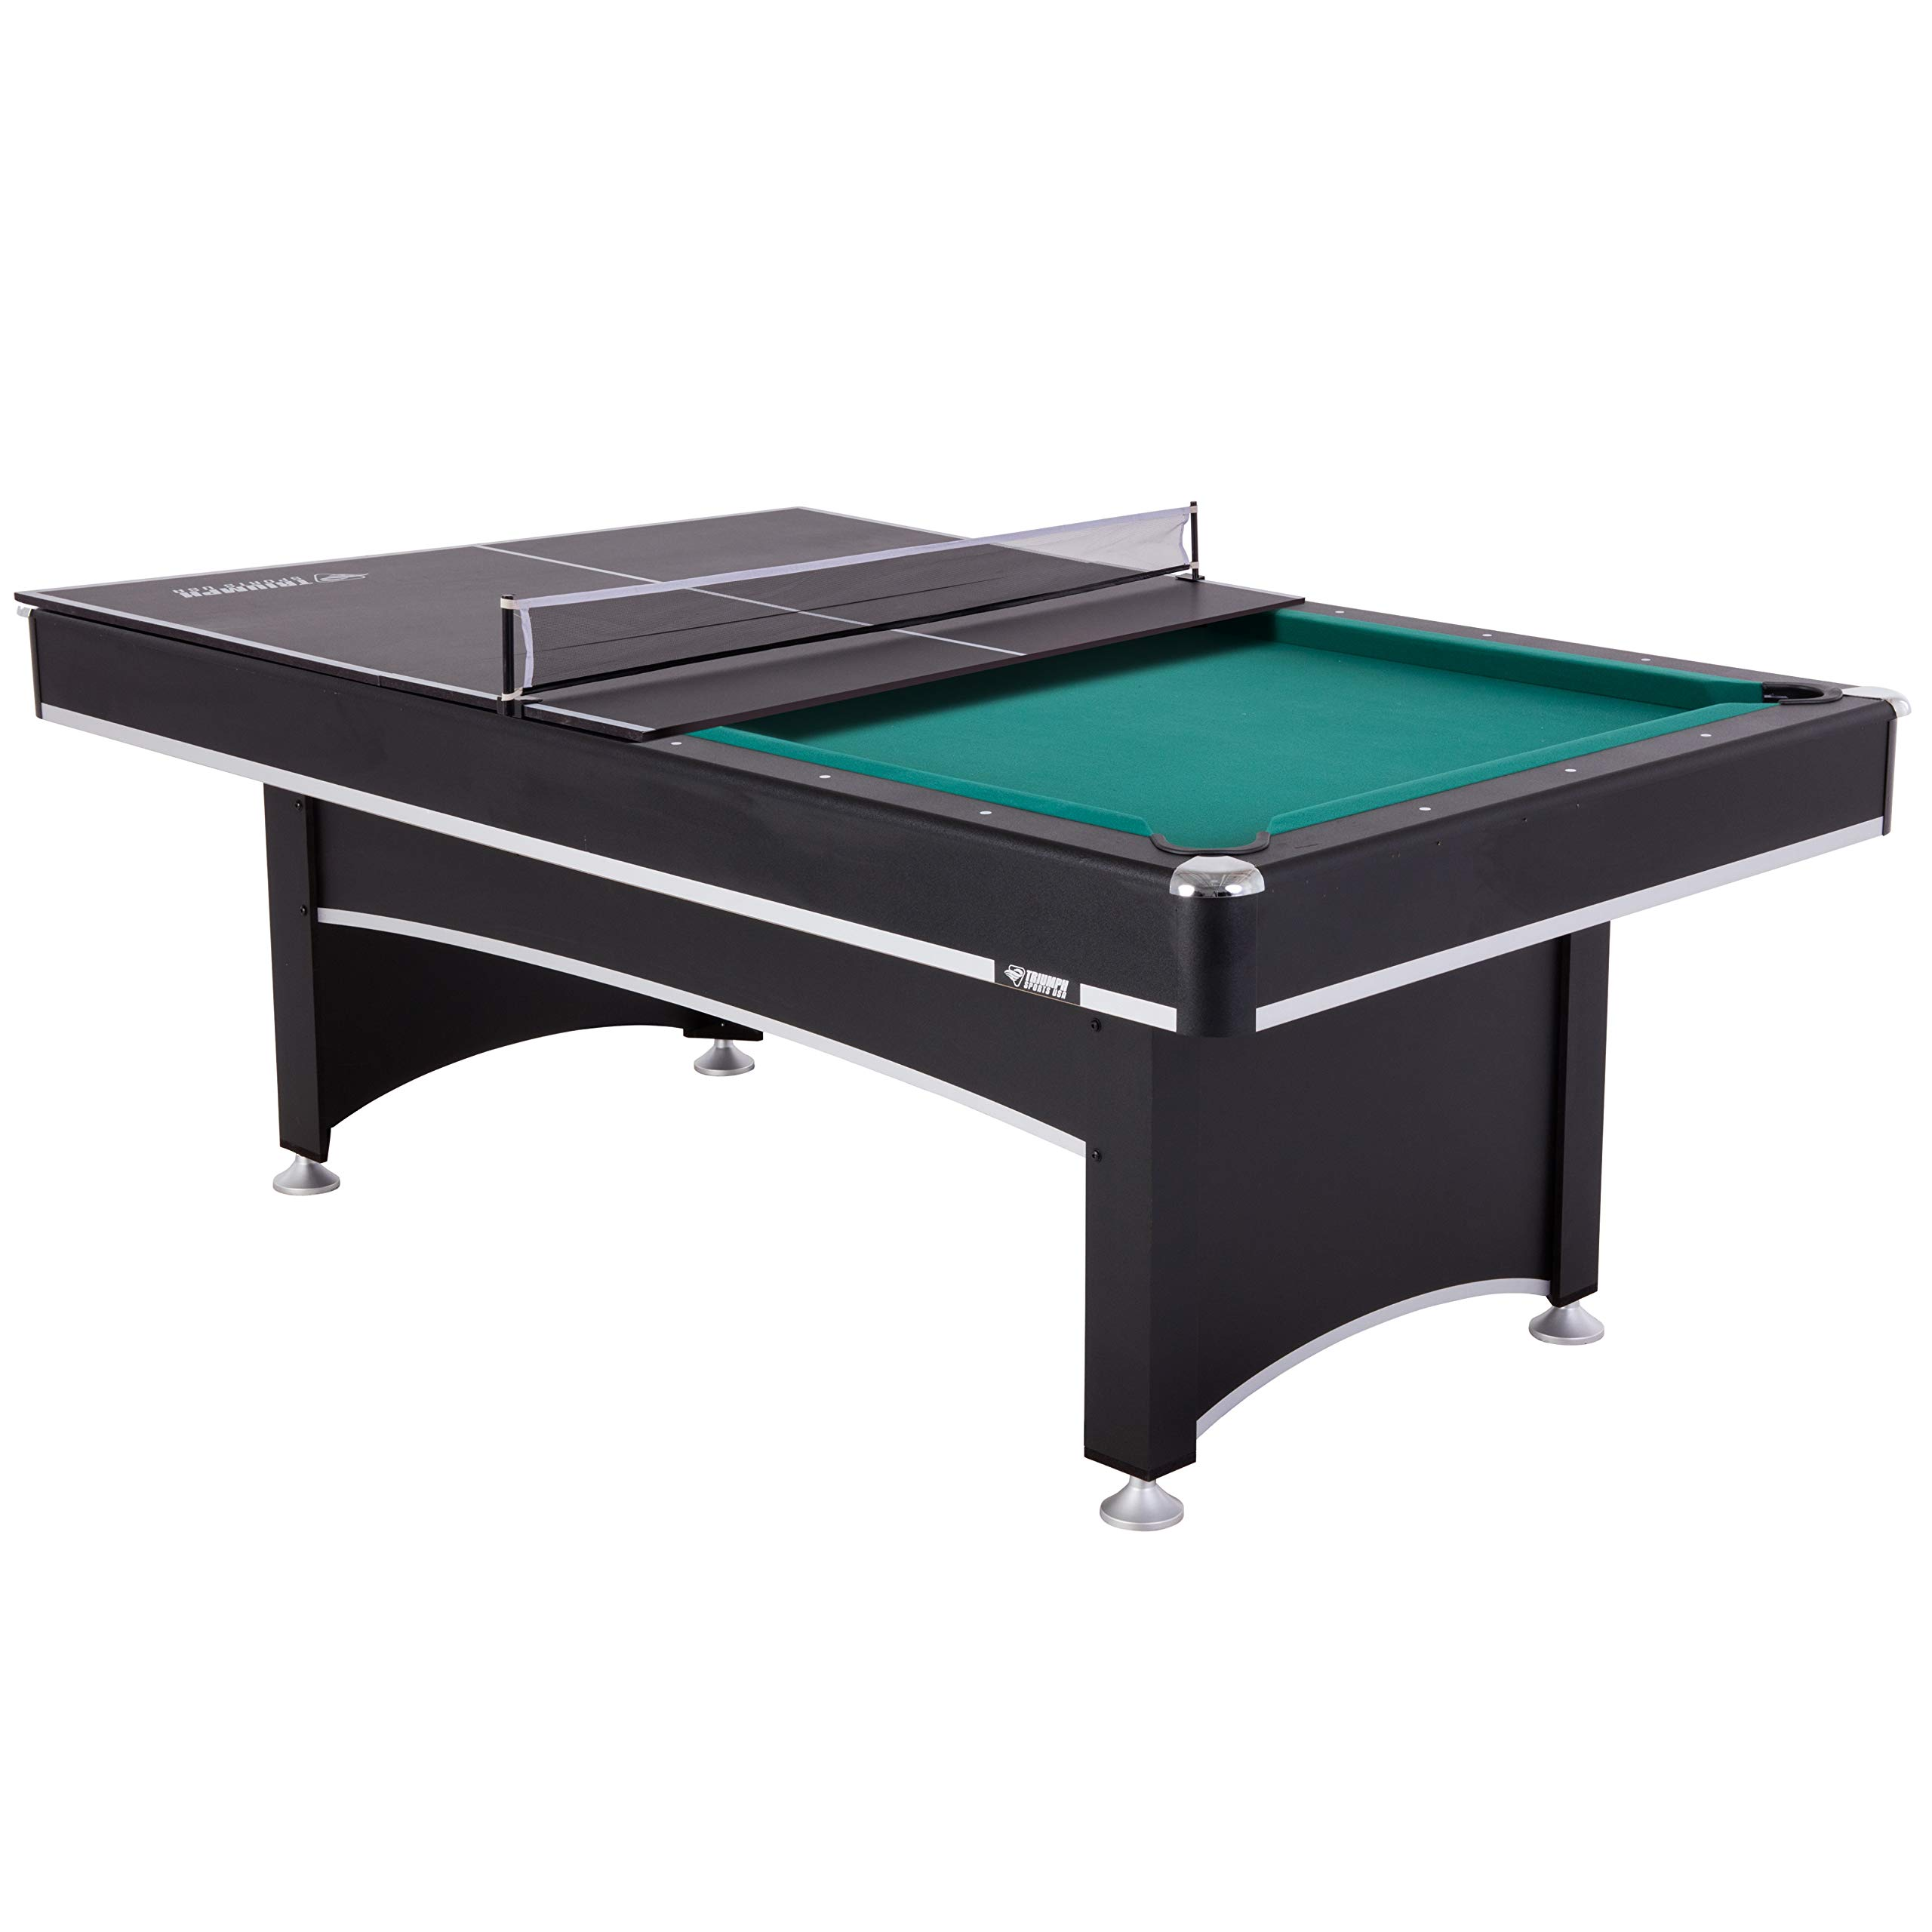 Triumph Phoenix 7' Billiard Table with Table Tennis Conversion Top for a Game of Pool or an Action-Packed Table Tennis Match by Triumph Sports